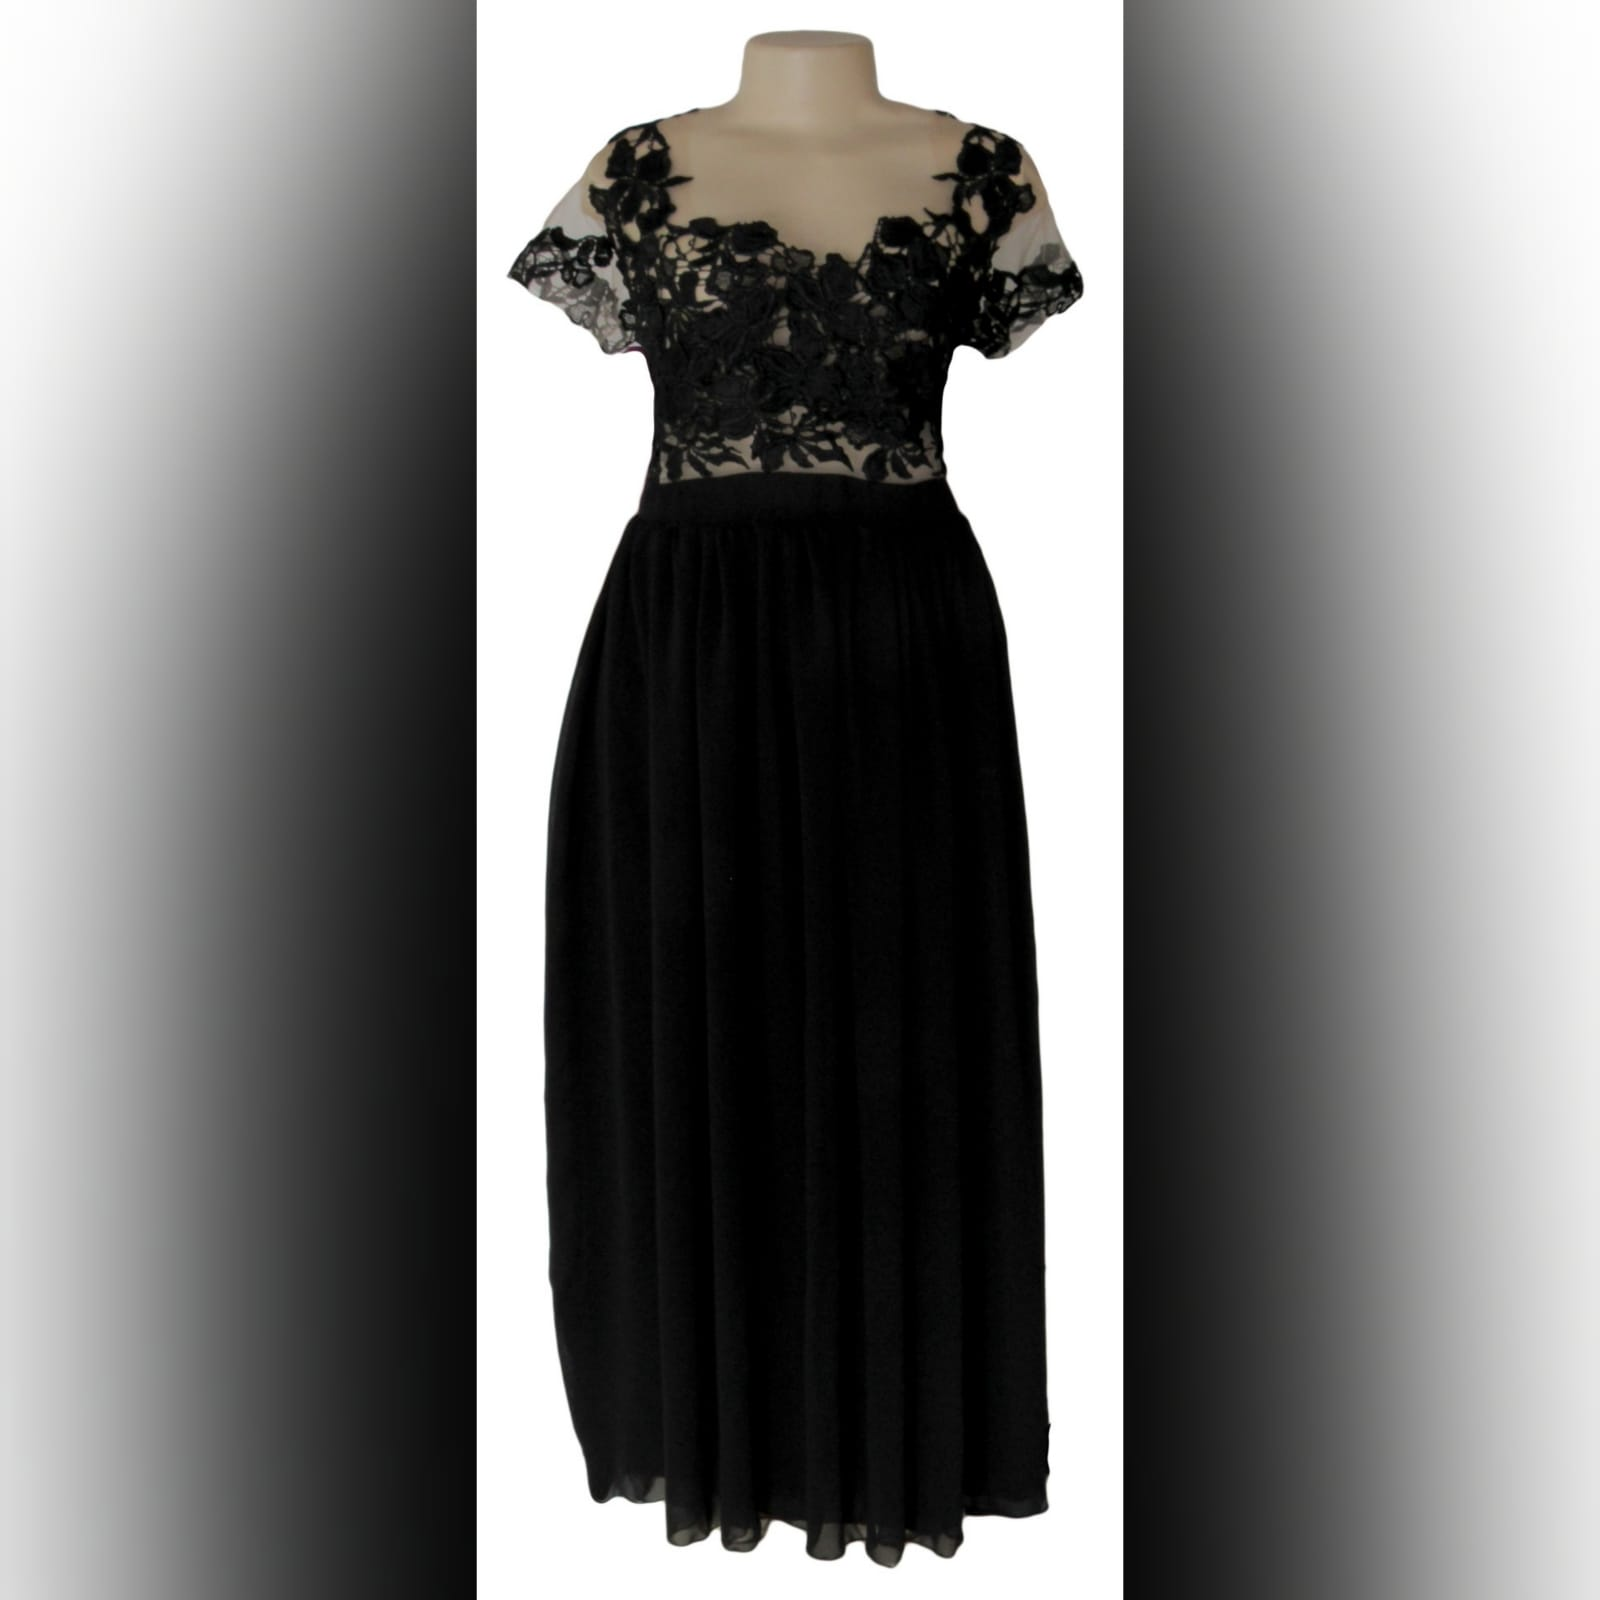 Black flowy lace bodice evening dress 6 black flowy lace bodice evening dress, an illusion bodice with an off shoulder effect. Back detailed with covered buttons